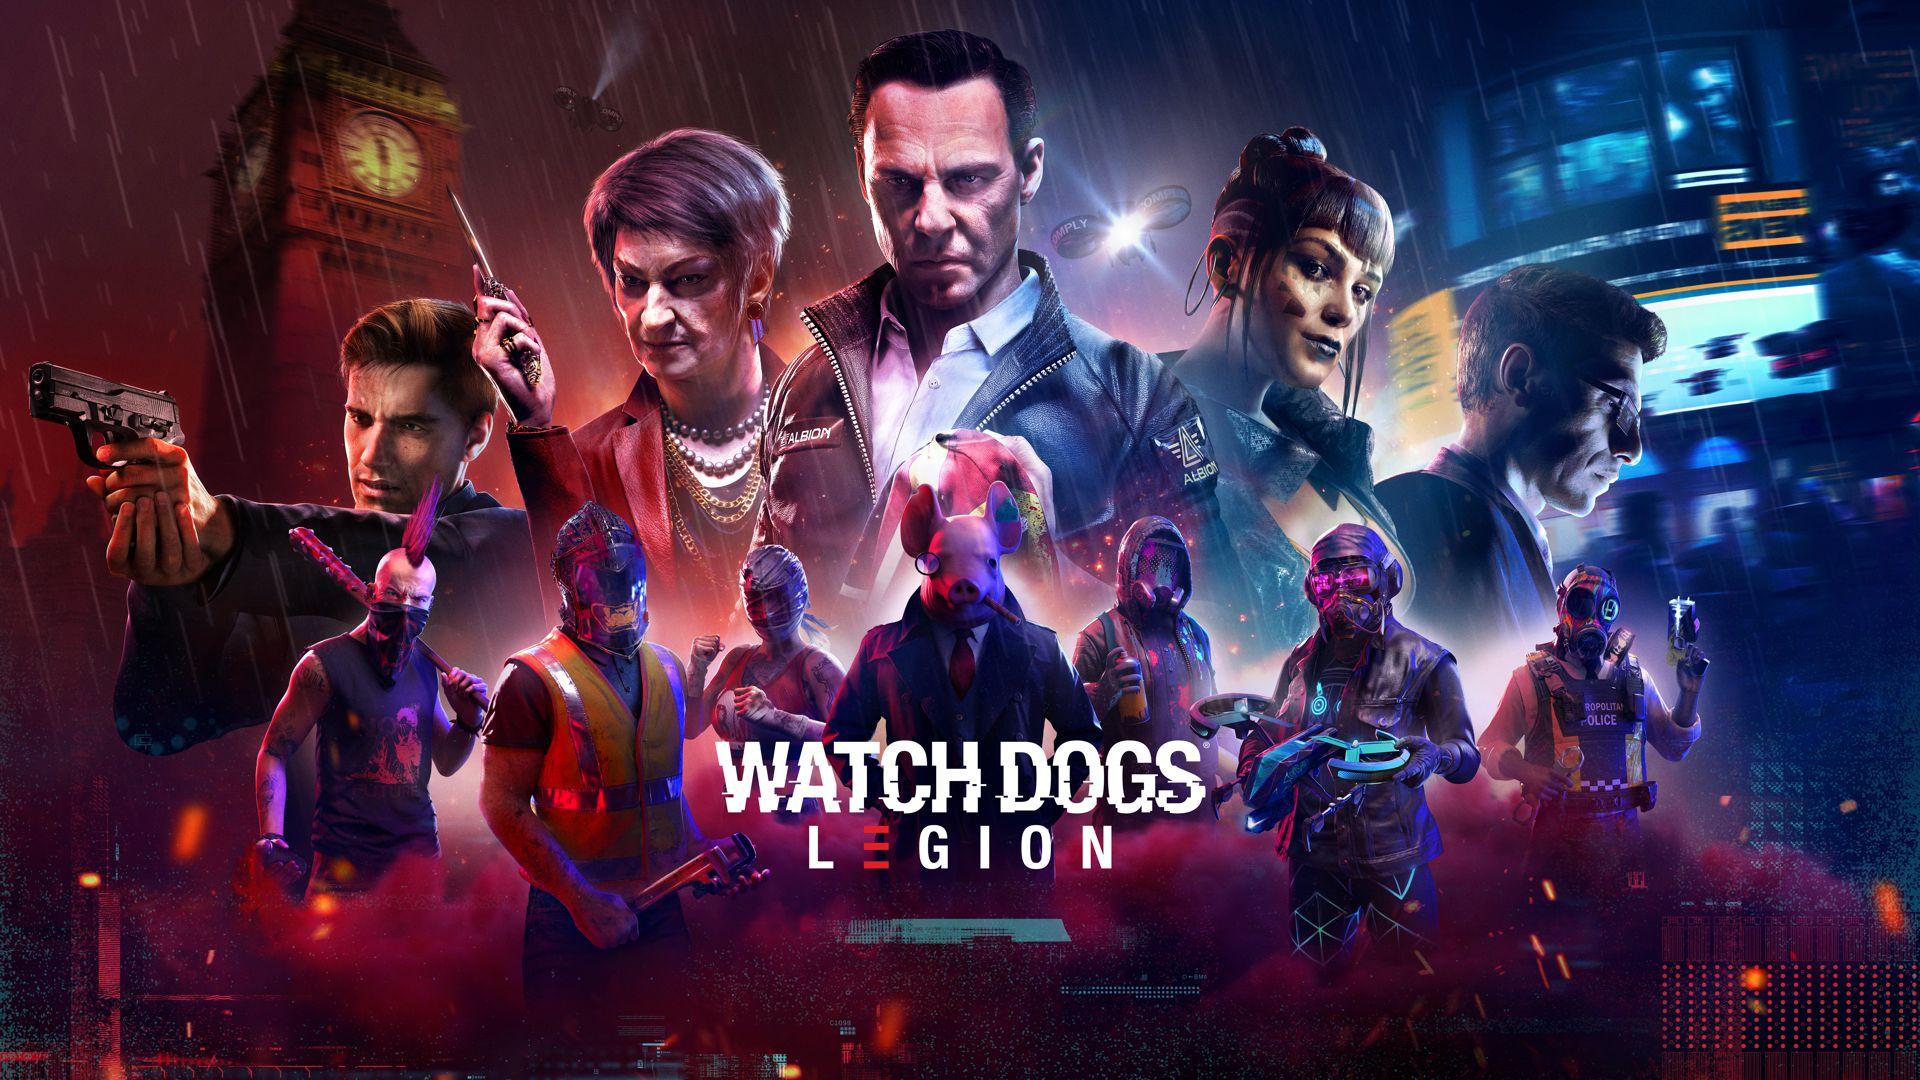 Watch Dogs Legion Principal